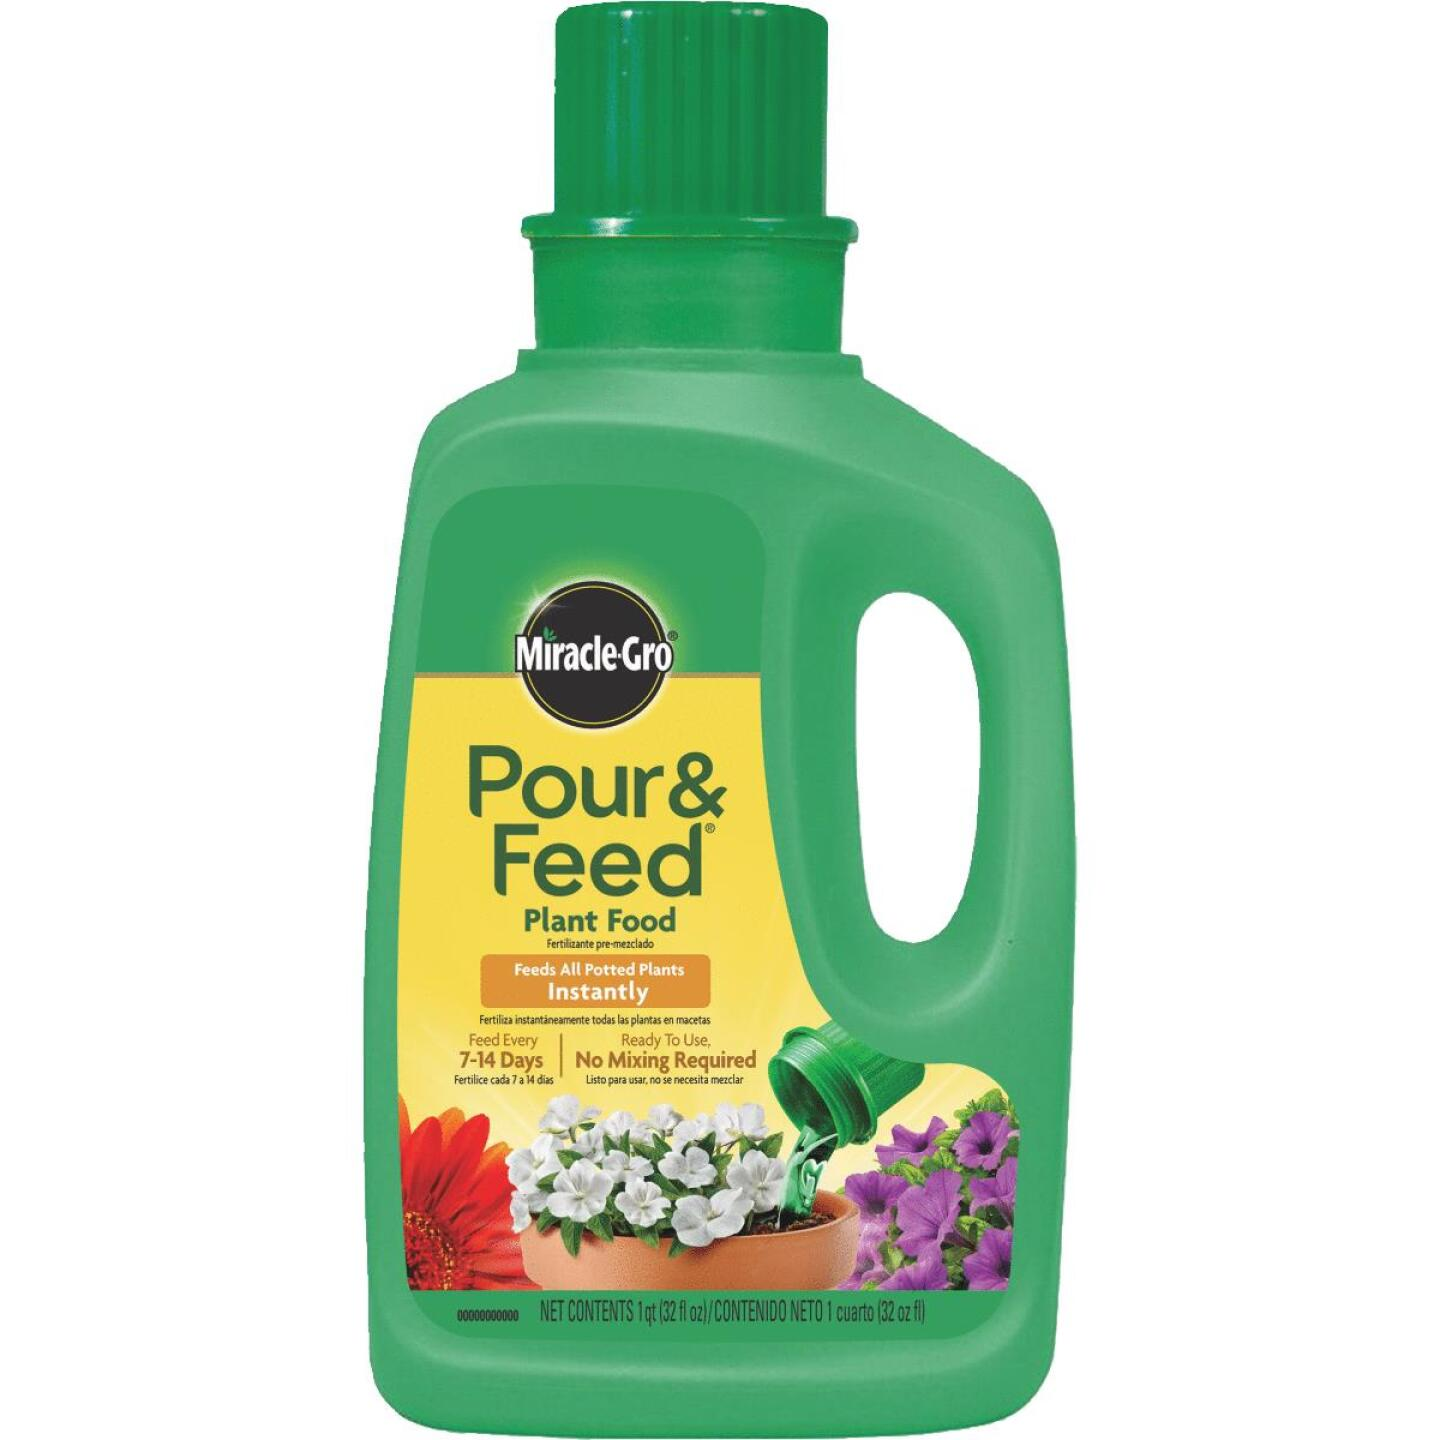 Miracle-Gro 32 Oz. 0.02-0.02-0.02 Ready To Use Liquid Plant Food Image 1